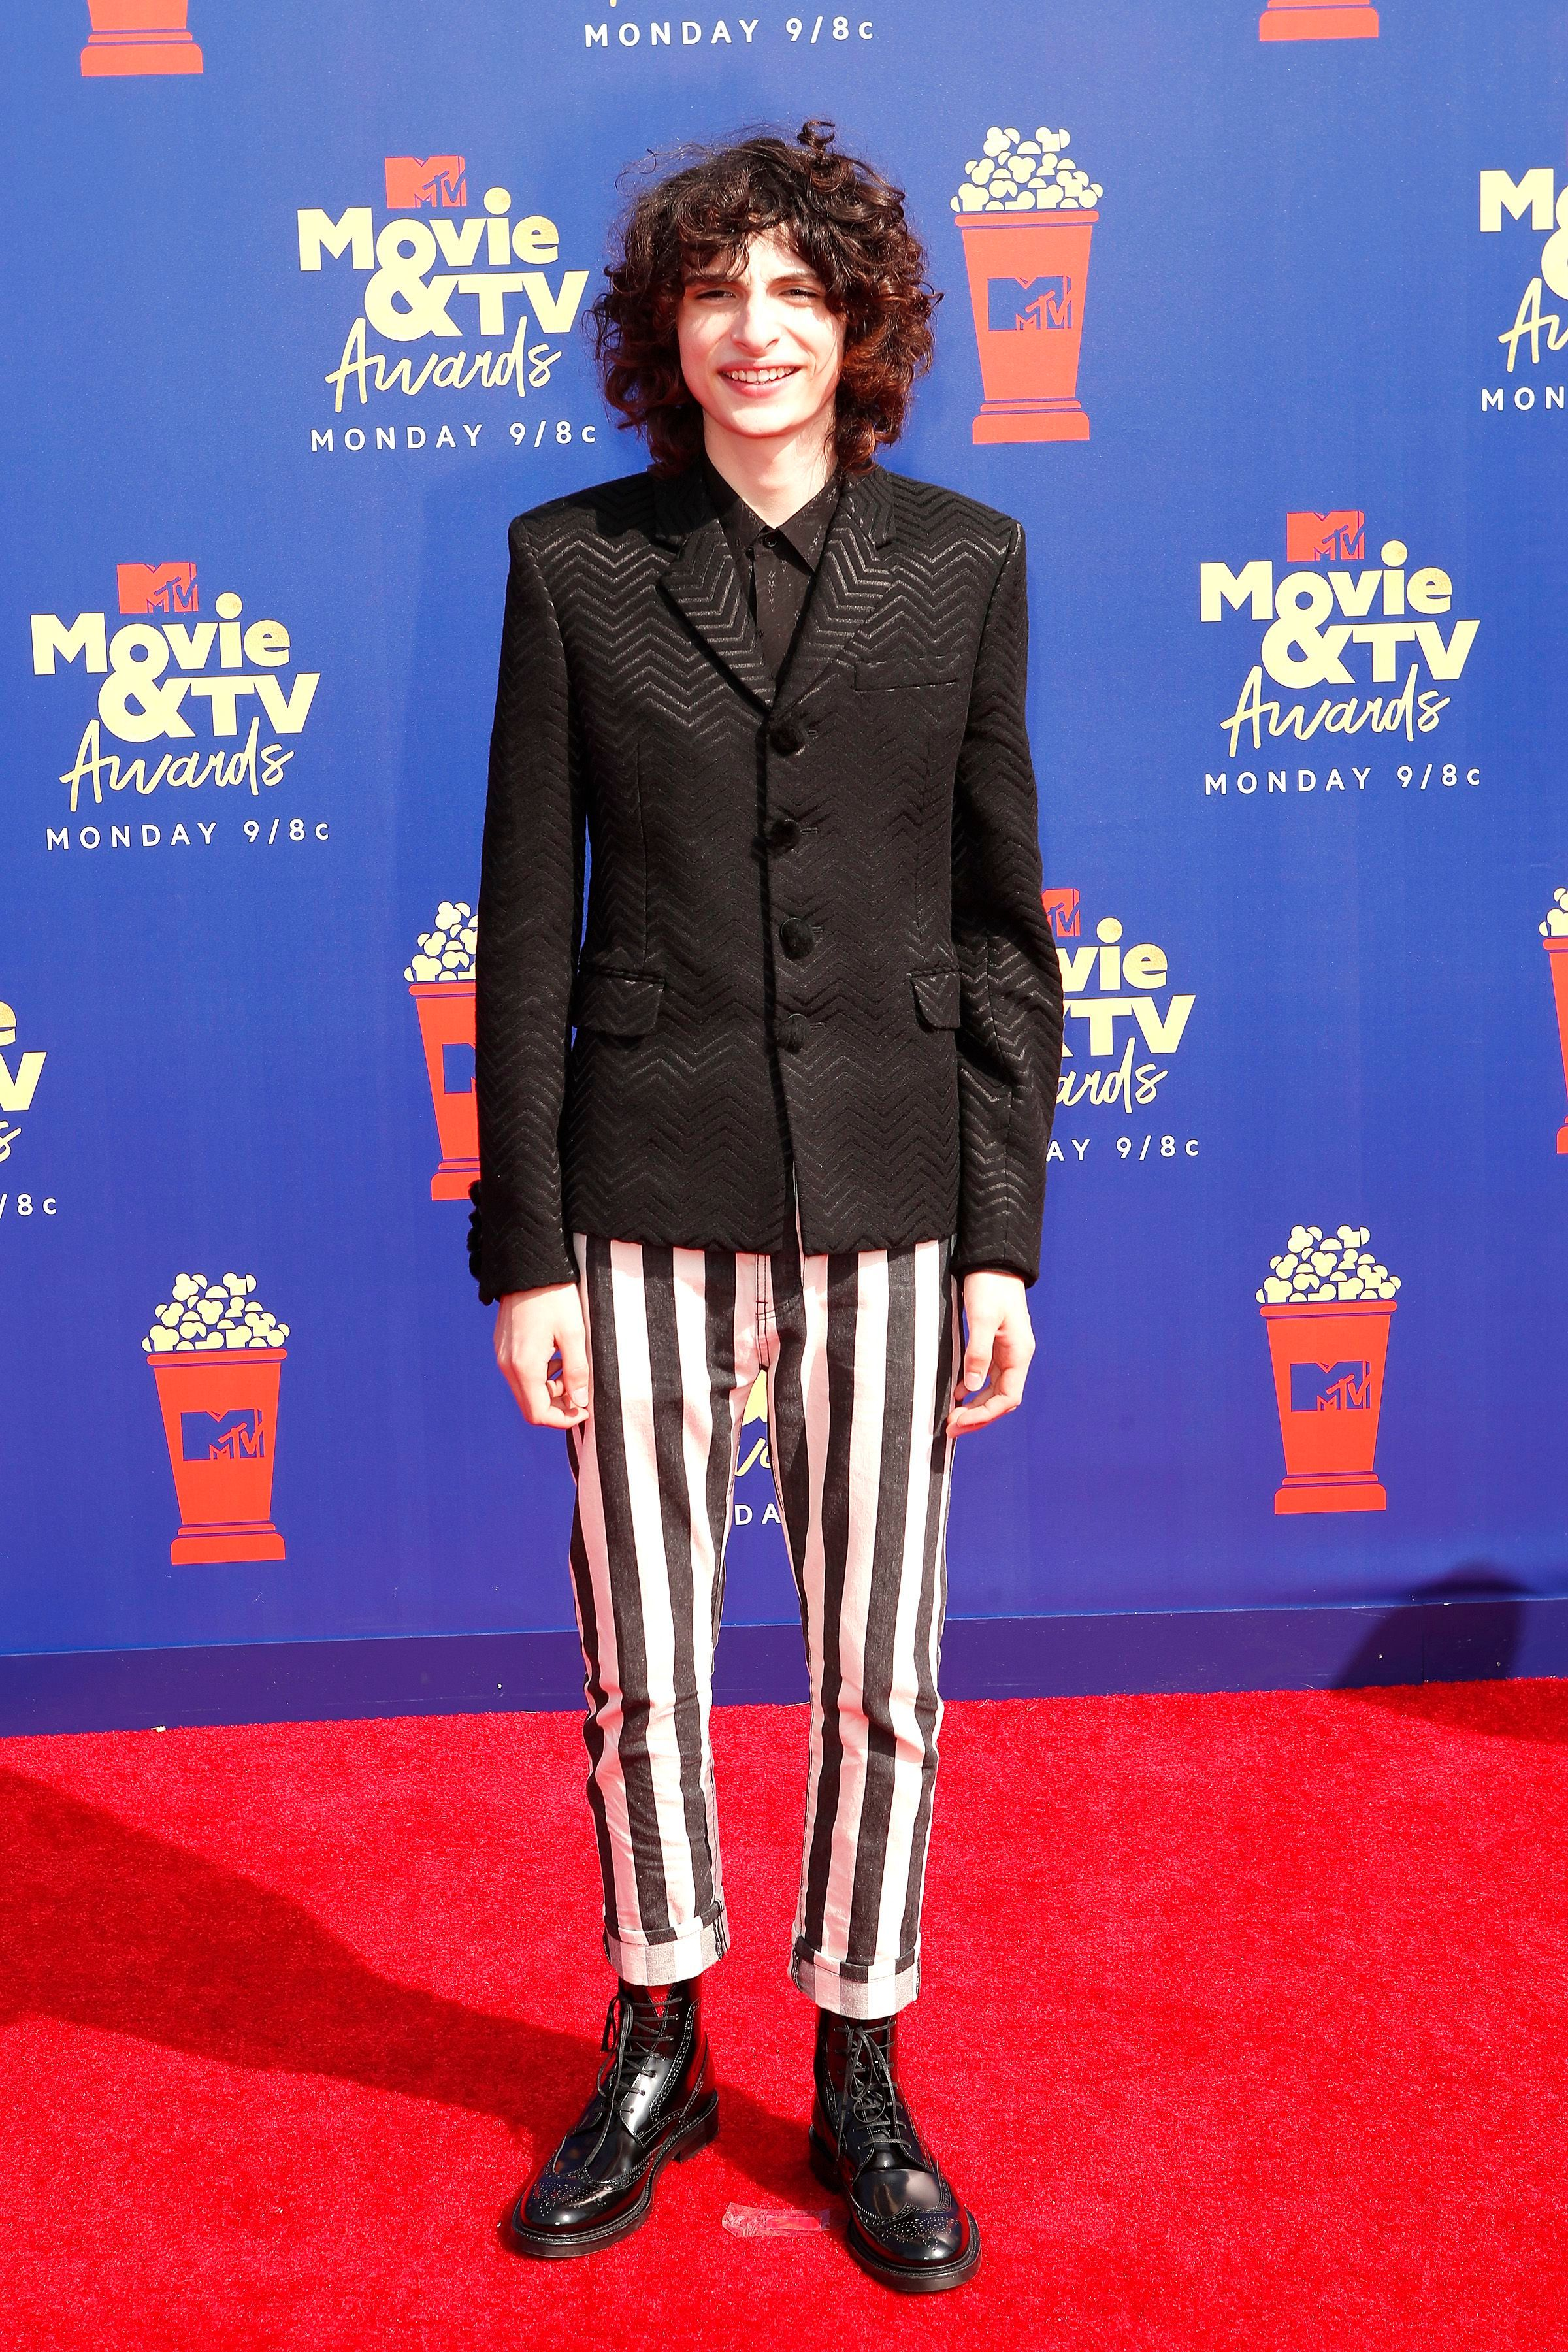 MTV Movie & TV Awards 2019: Best and worst moments, complete